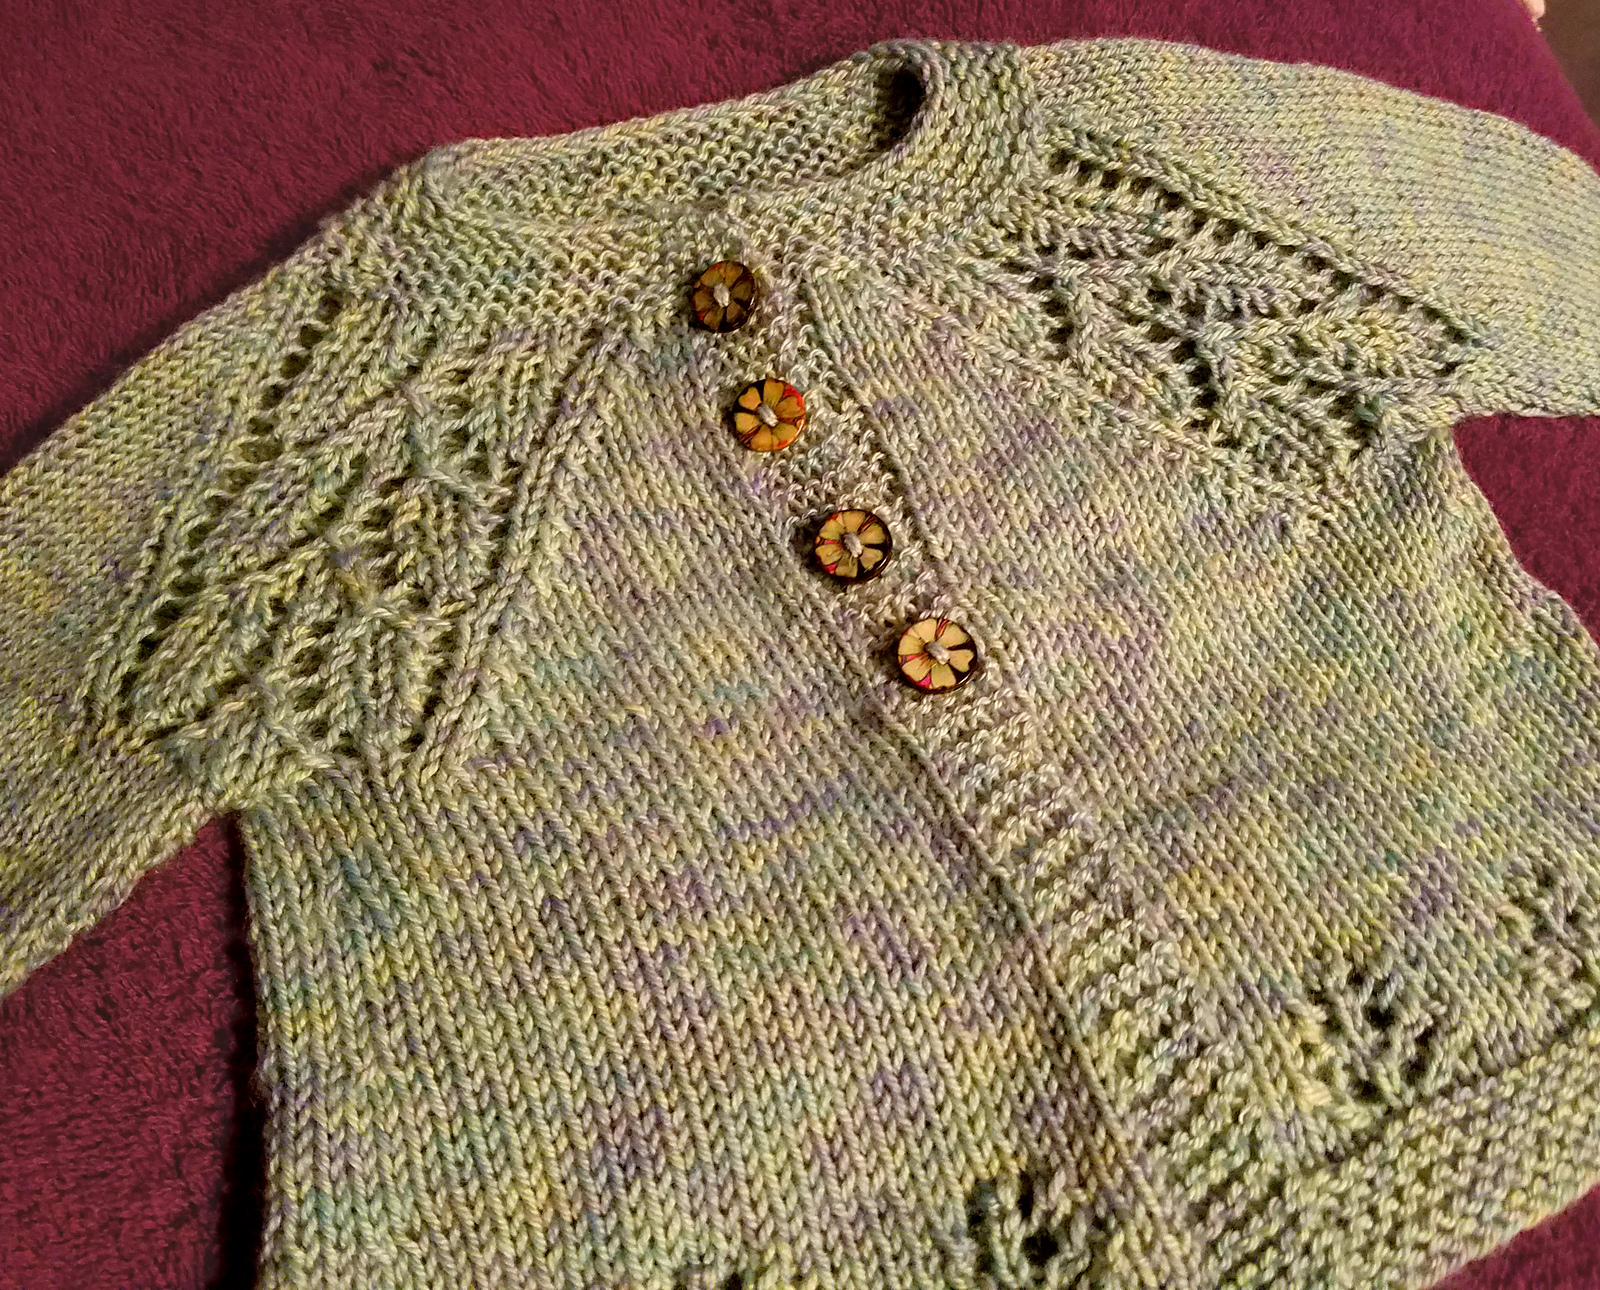 A green knit baby sweater with flower lace at the  shoulders